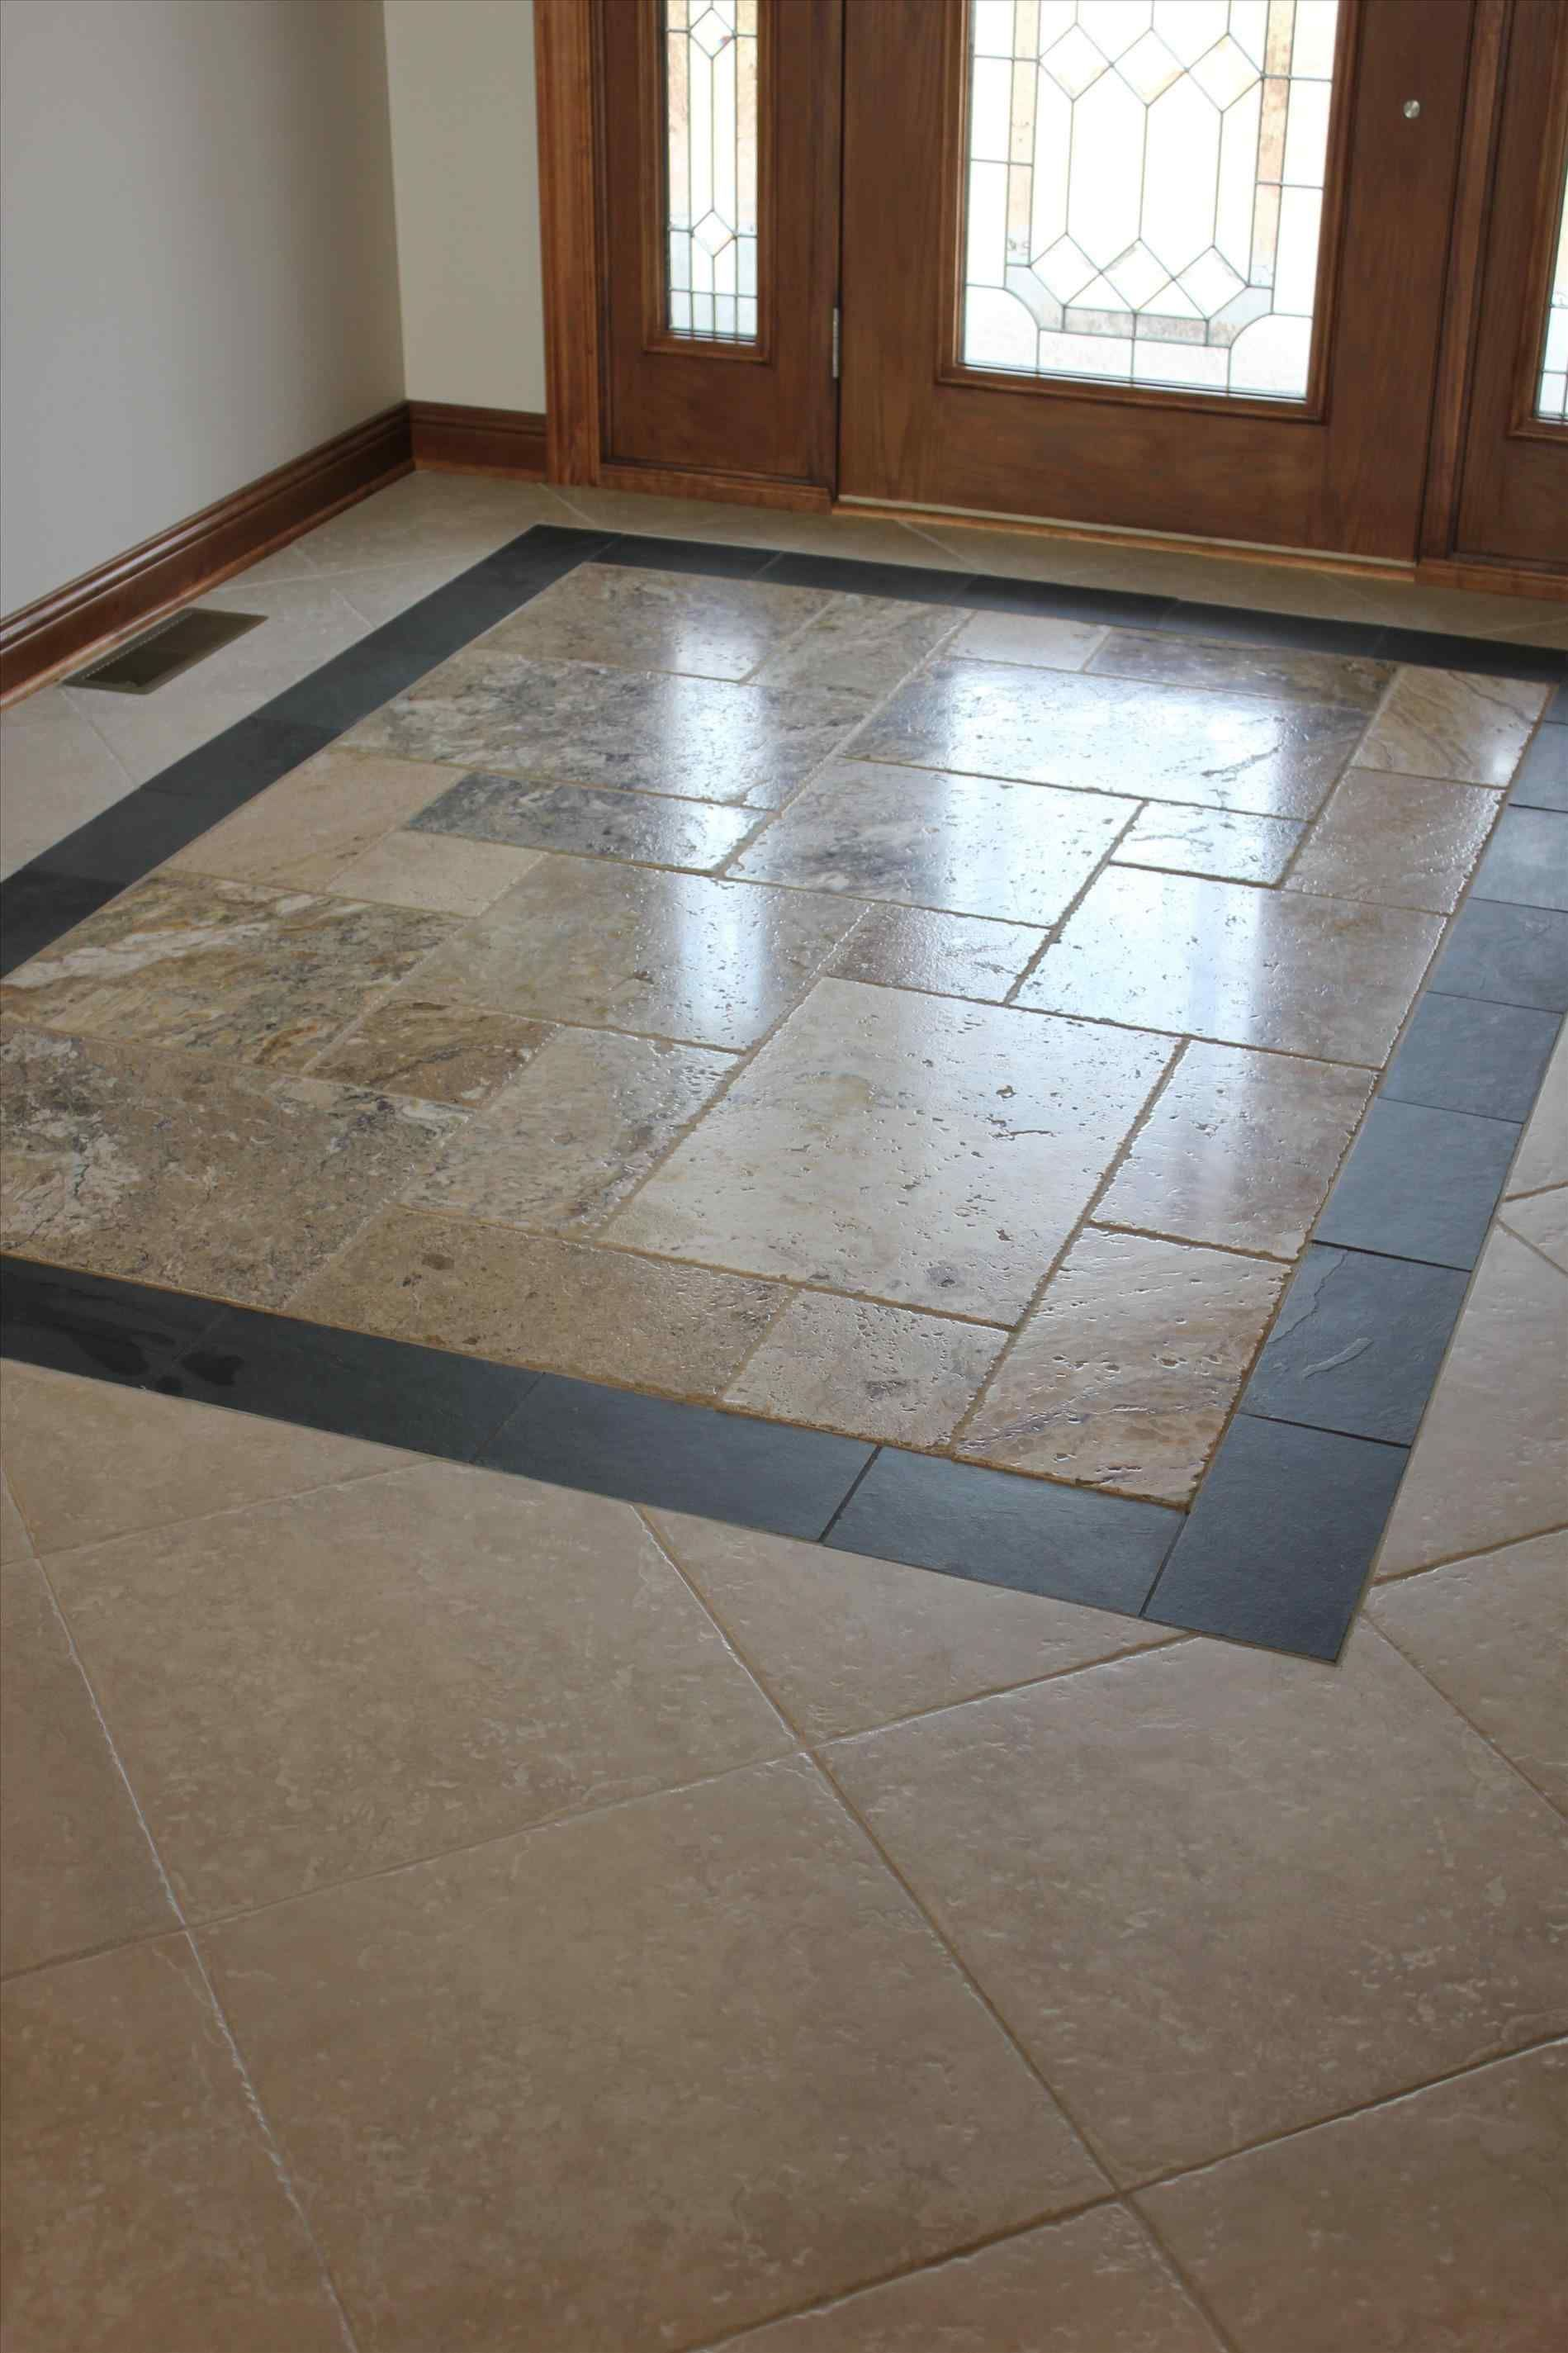 Brilliant Gorgeous Entry Floor Tile Designs For Your Home Inspiration